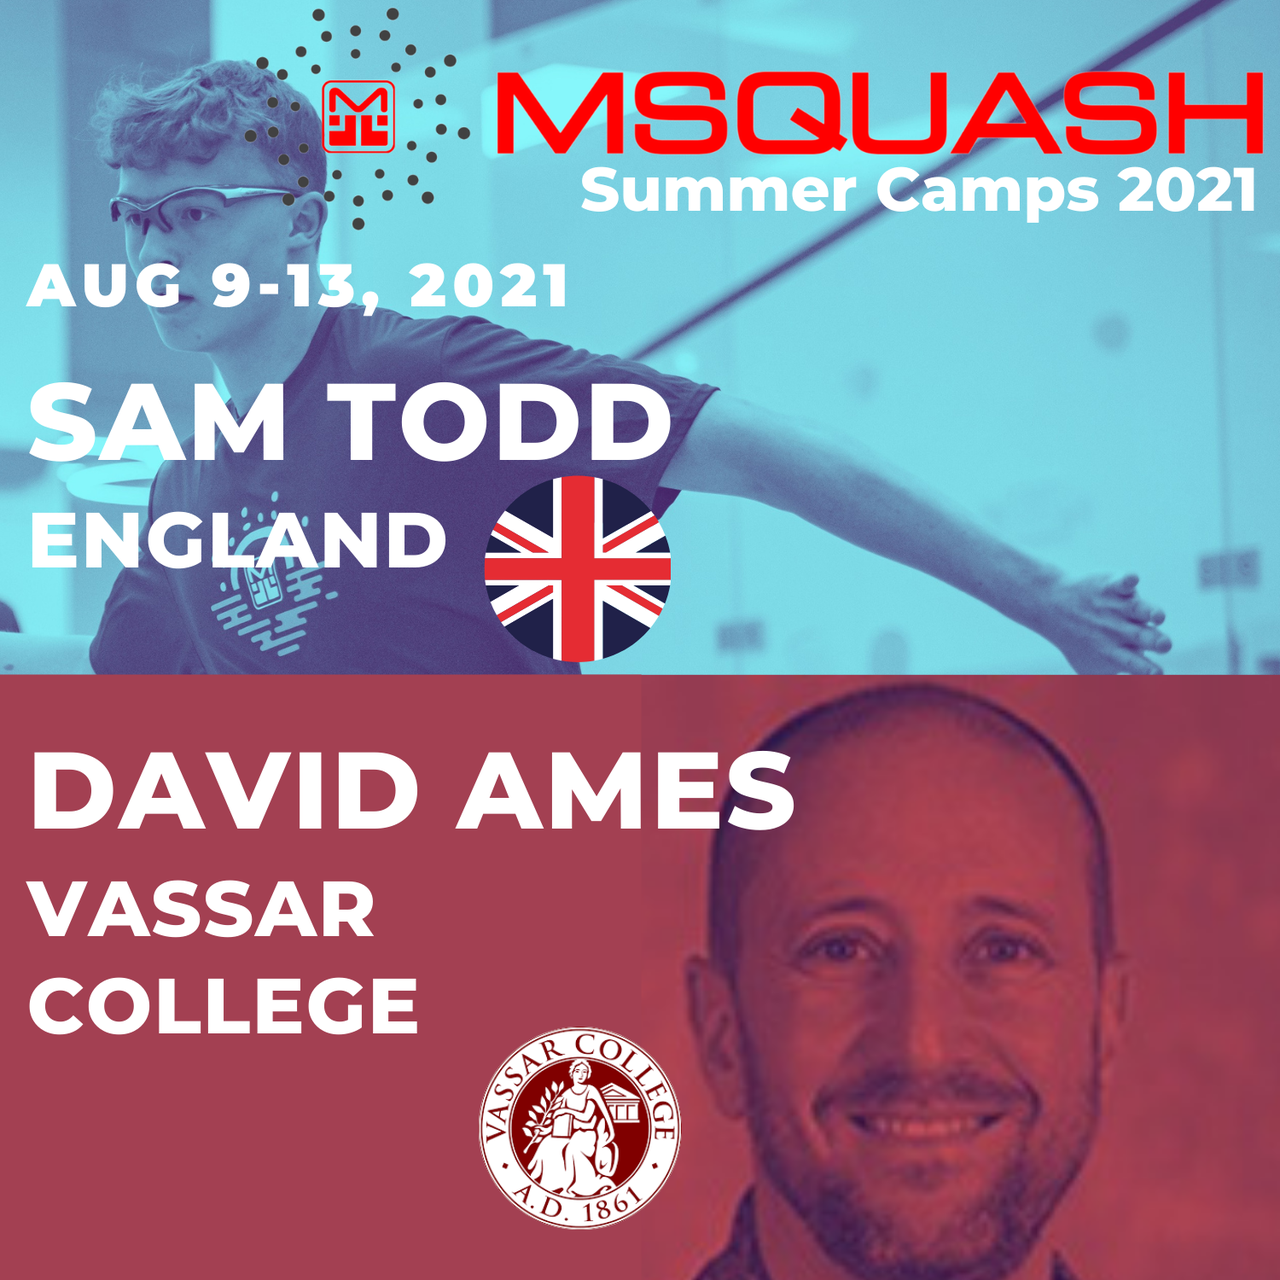 summer camps 2021 logo (23).png